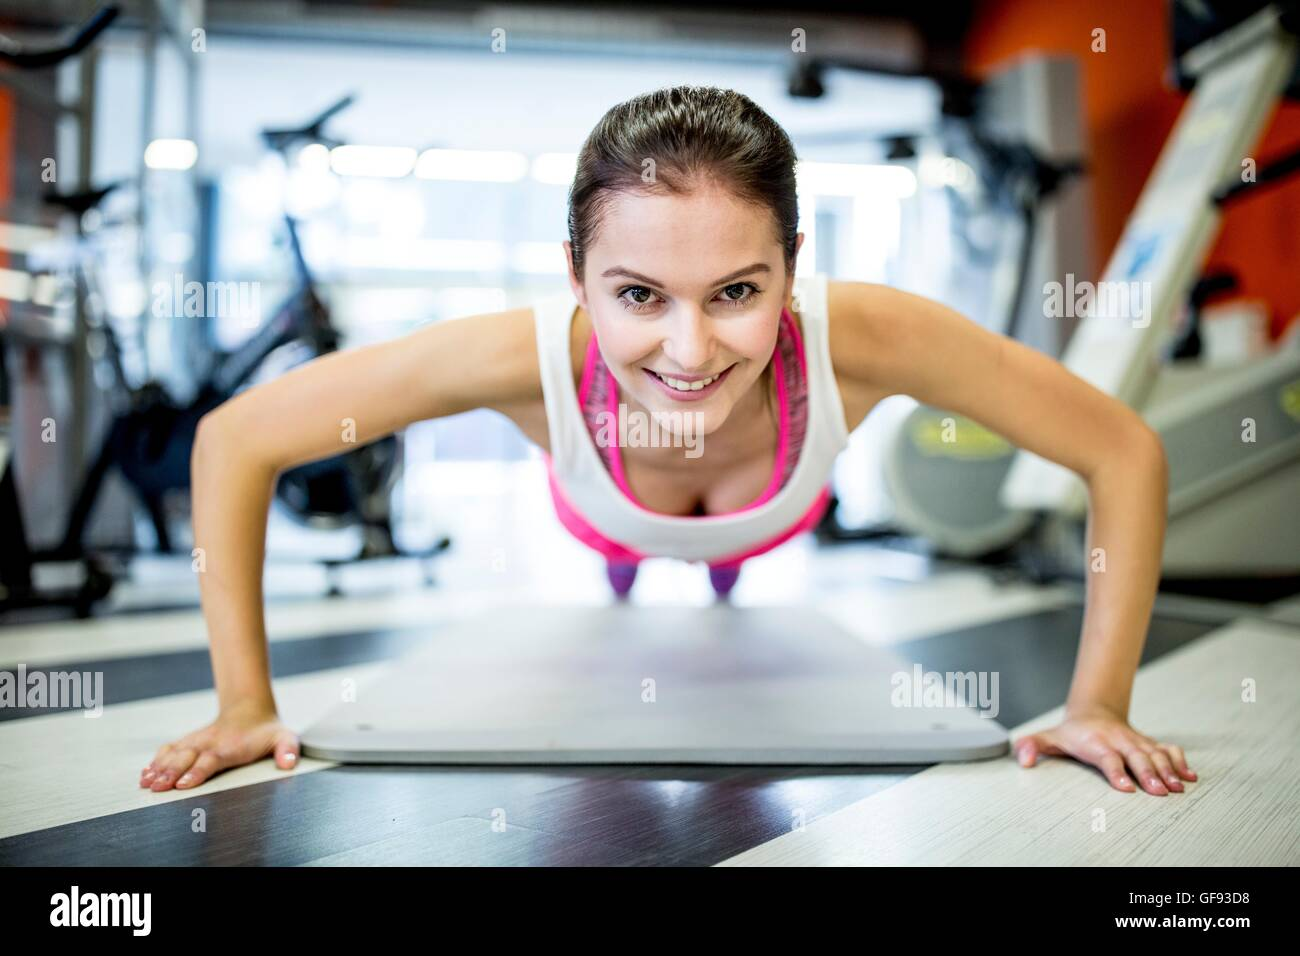 PROPERTY RELEASED. MODEL RELEASED. Portrait of young woman doing press-ups in gym. - Stock Image